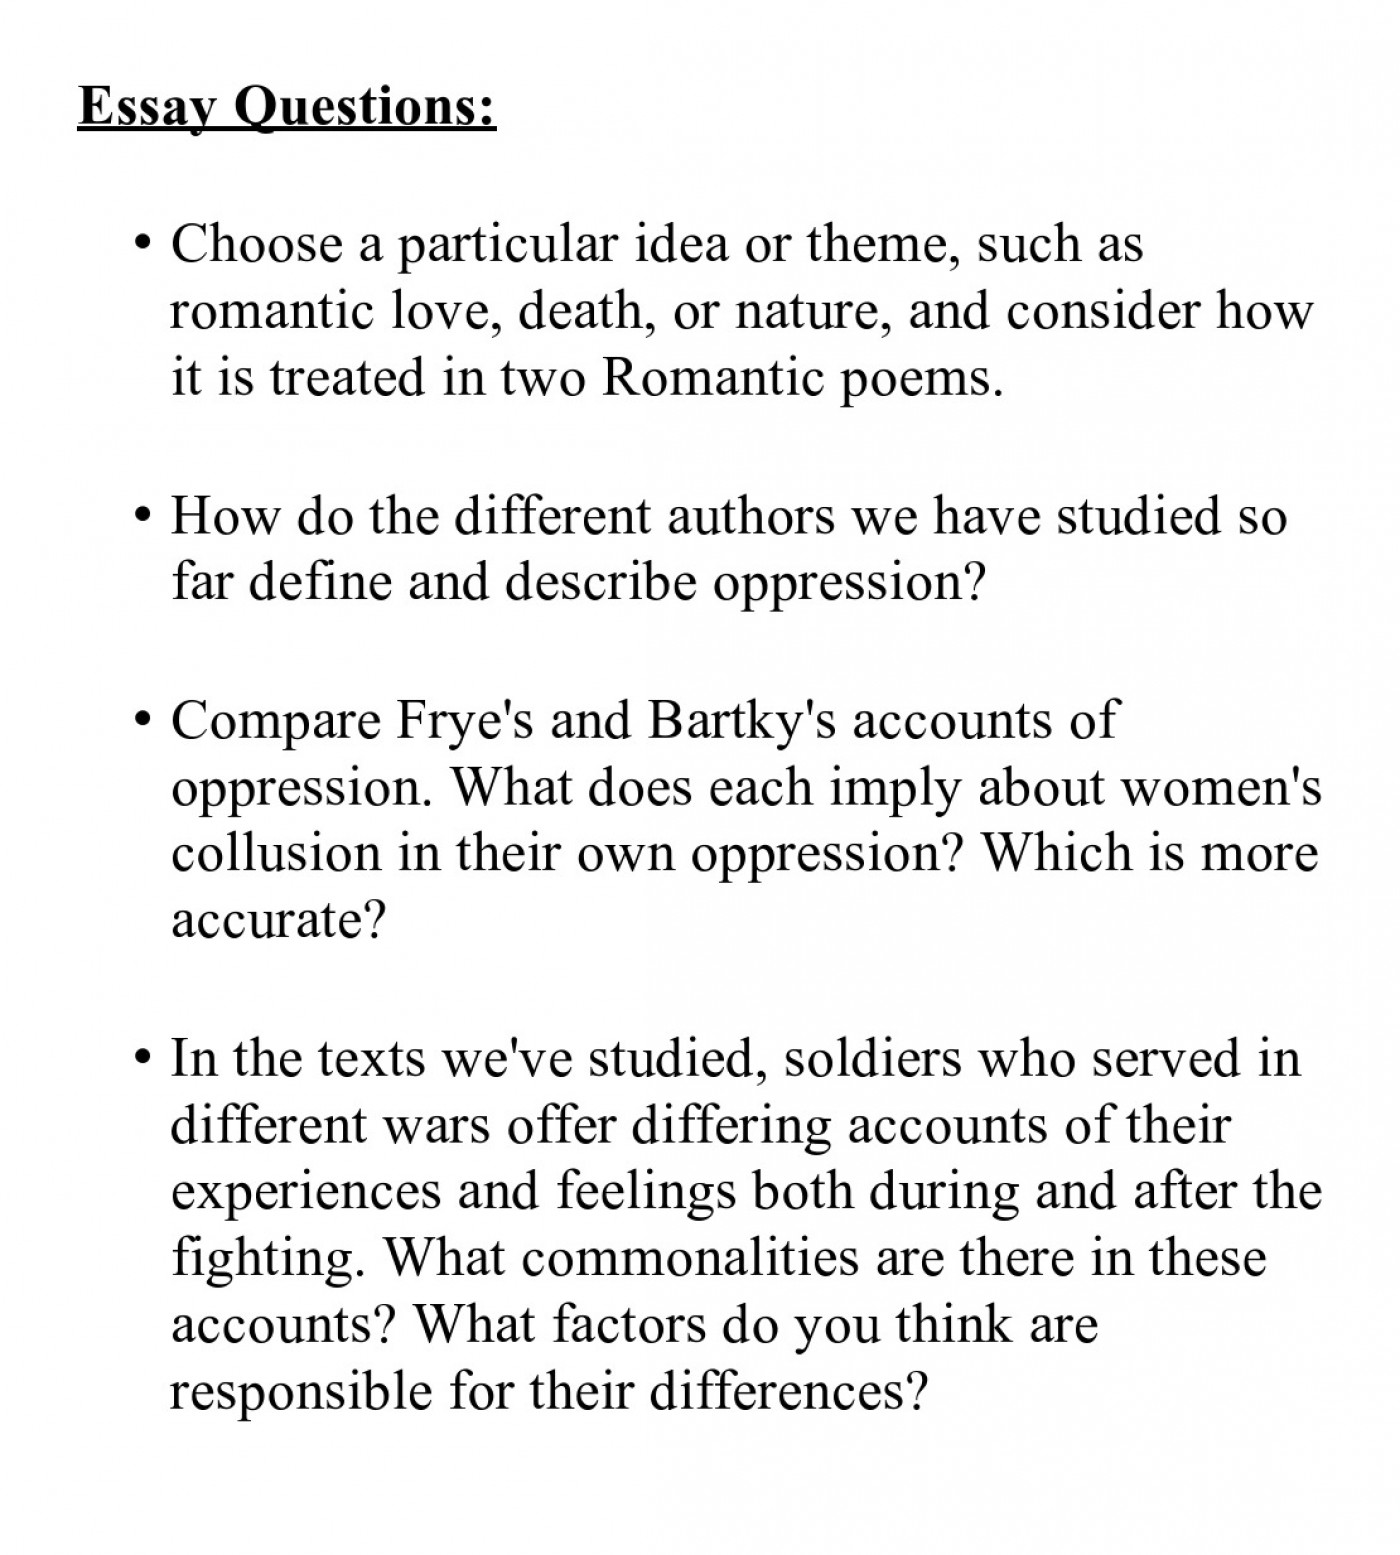 quiz worksheet features of essay prompts  thatsnotus   essay example prompts questions best ap for frankenstein writing  high school economics topics based on